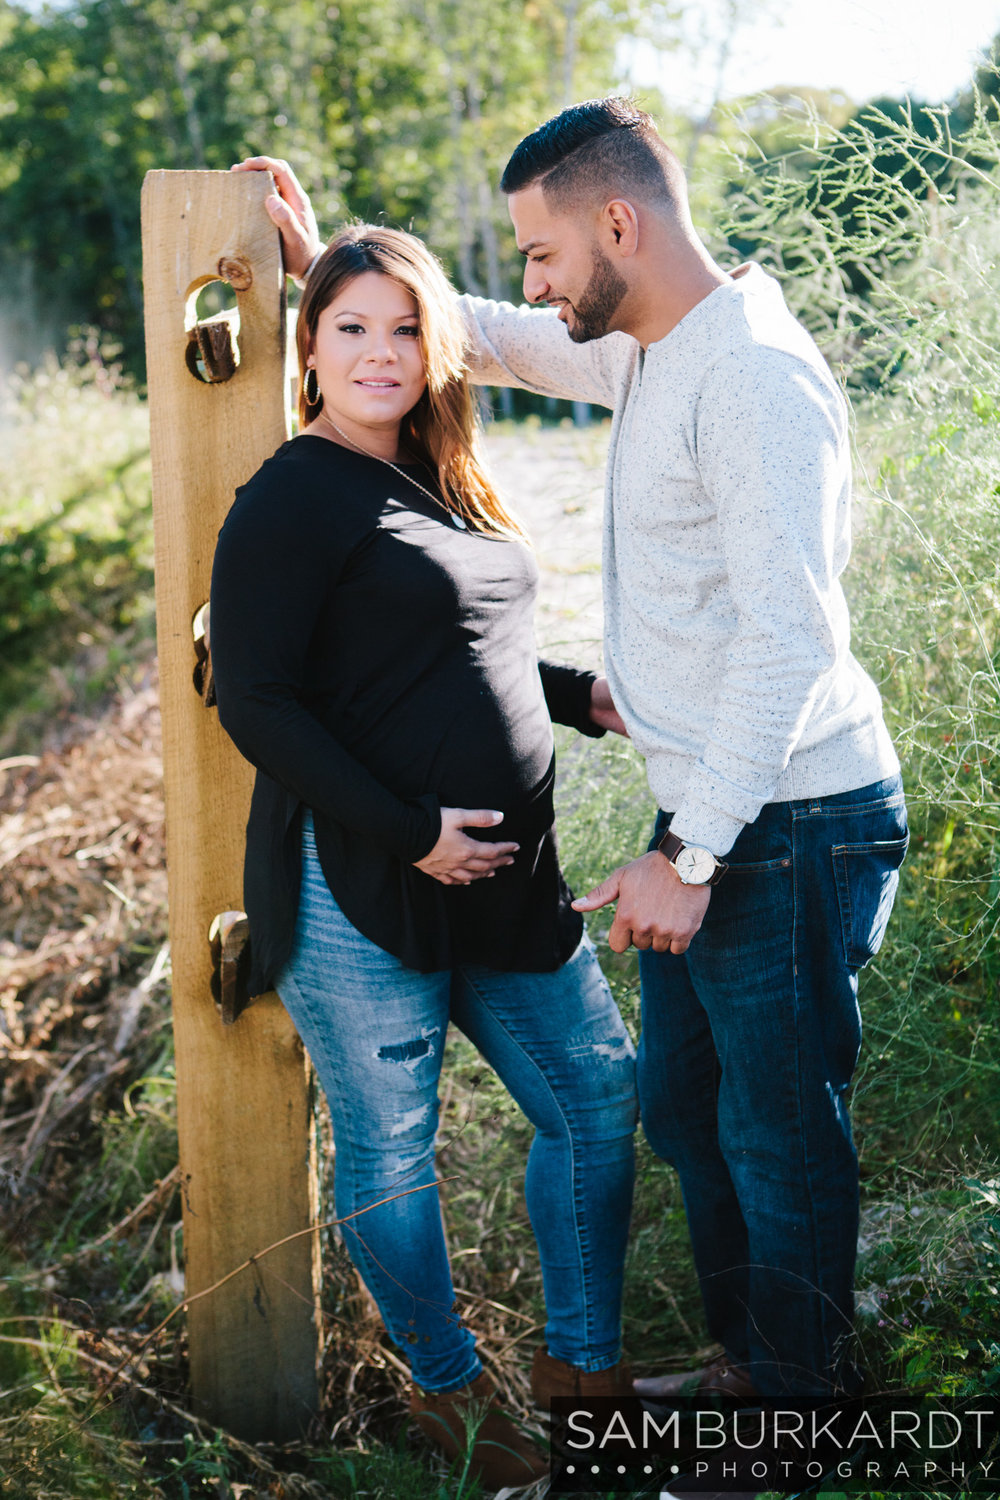 sburkardt_maternity_connecticut_fall_orchard_photography_017.jpg